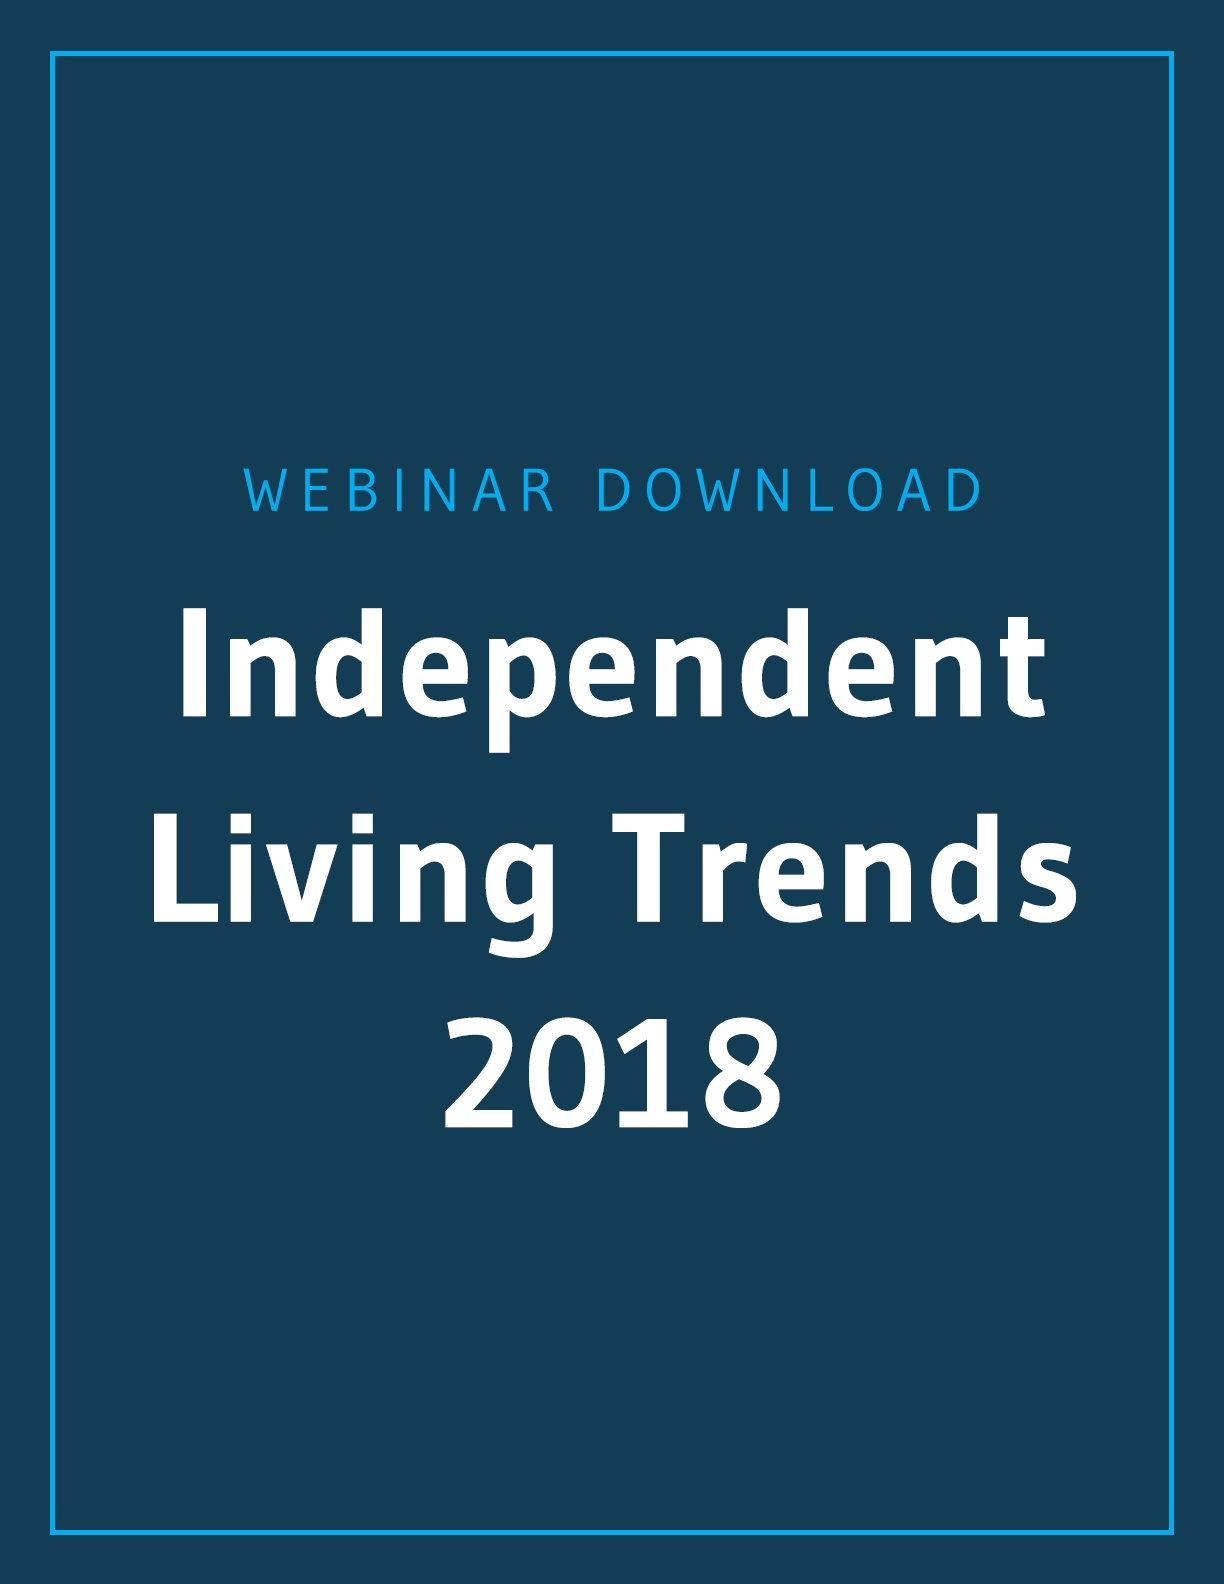 Independent Living Trends 2018